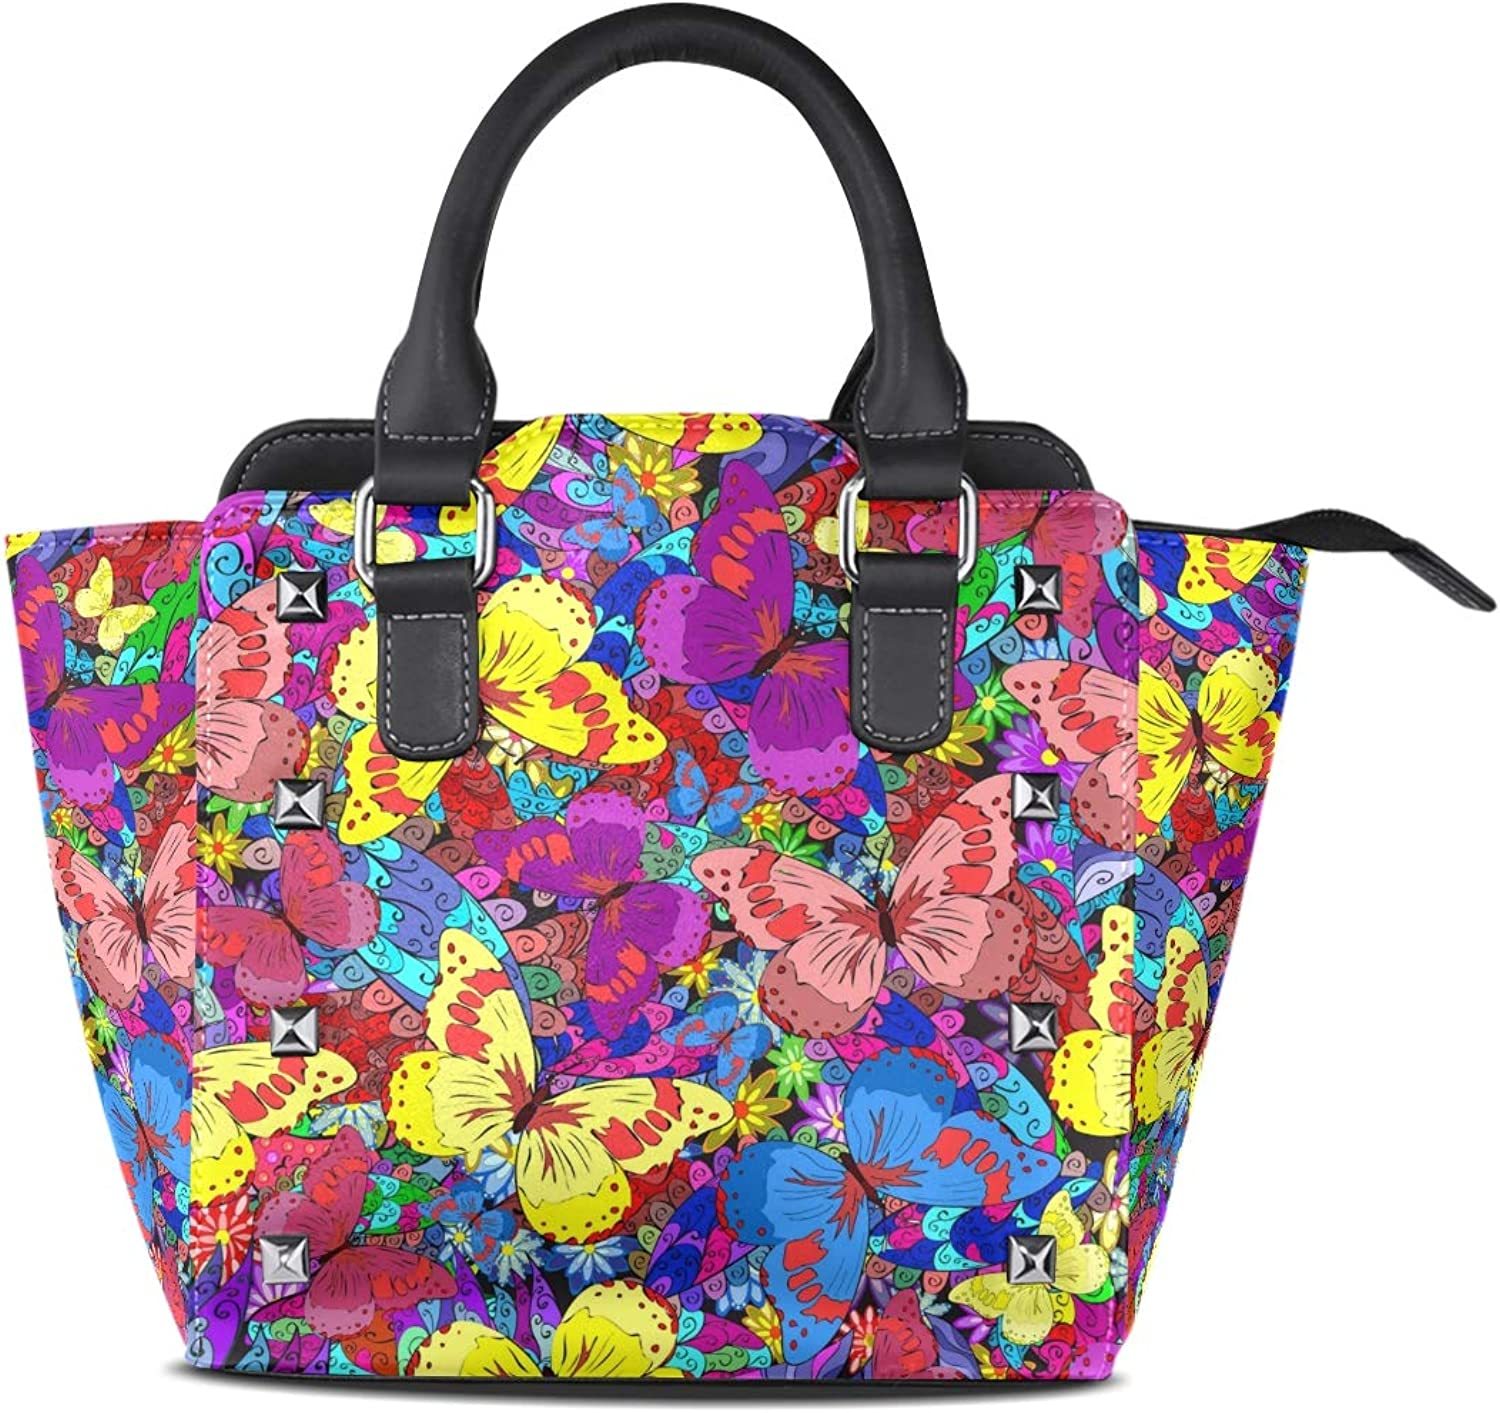 My Little Nest Women's Top Handle Satchel Handbag Abstract colorful Butterfly Ladies PU Leather Shoulder Bag Crossbody Bag